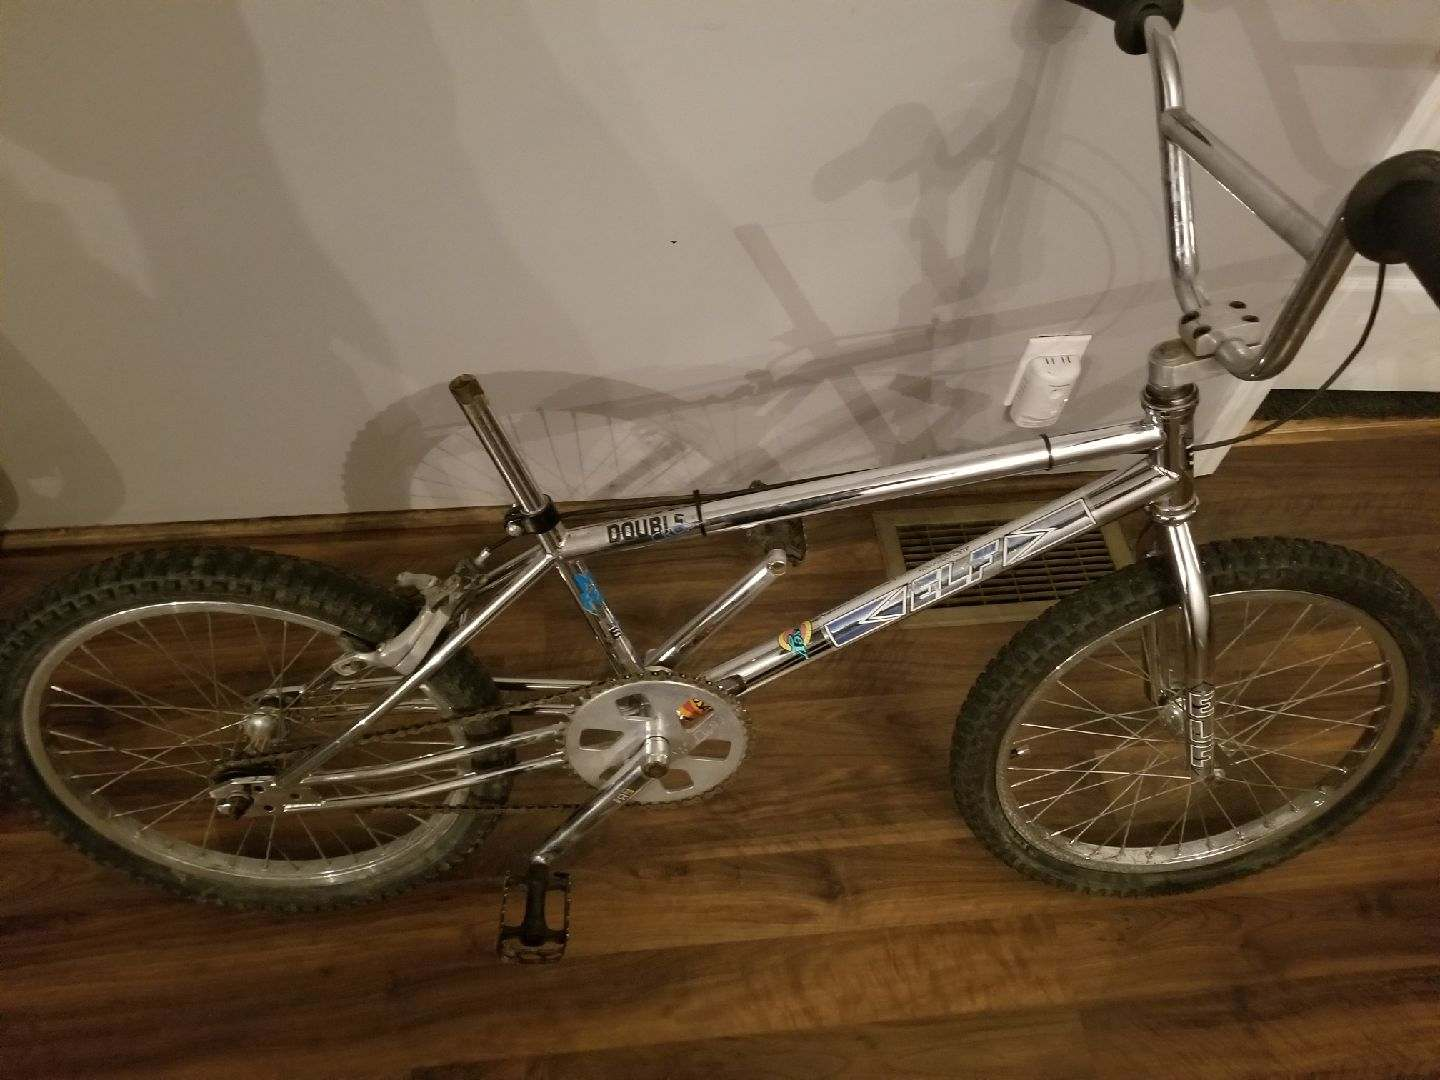 http://uploads.bmxmuseum.com/user-images/240568/2508759b732c7b3.jpeg